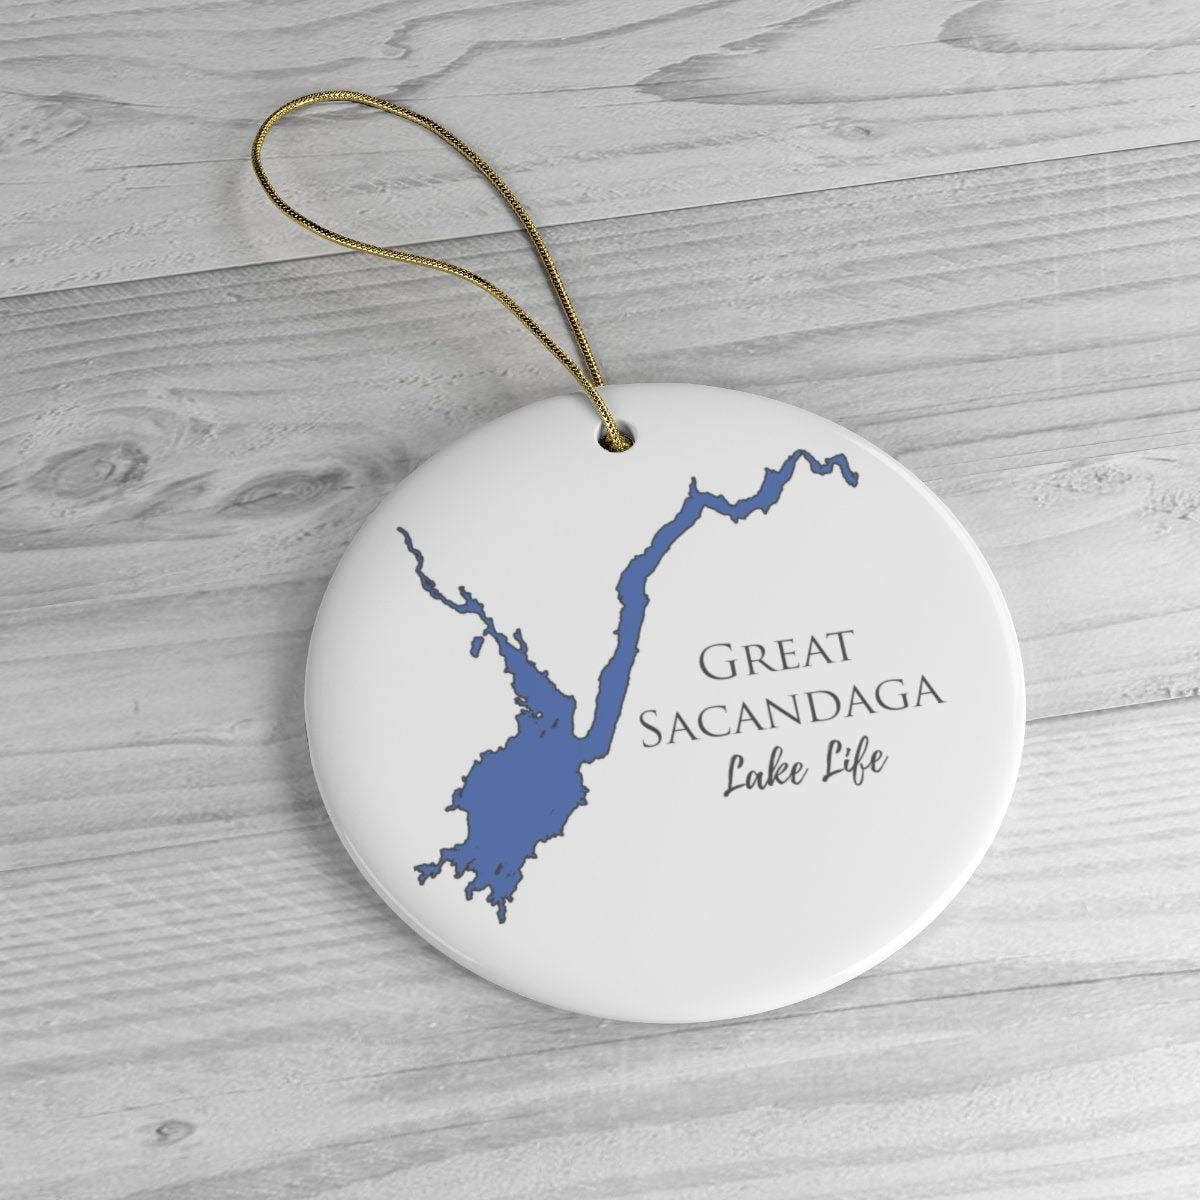 PotteLove Great Sacandaga Lake Life Ceramic Ornament - Classic Christmas Ornaments - New York Lake,Custom with Any Name and Date Porcelain Ornament